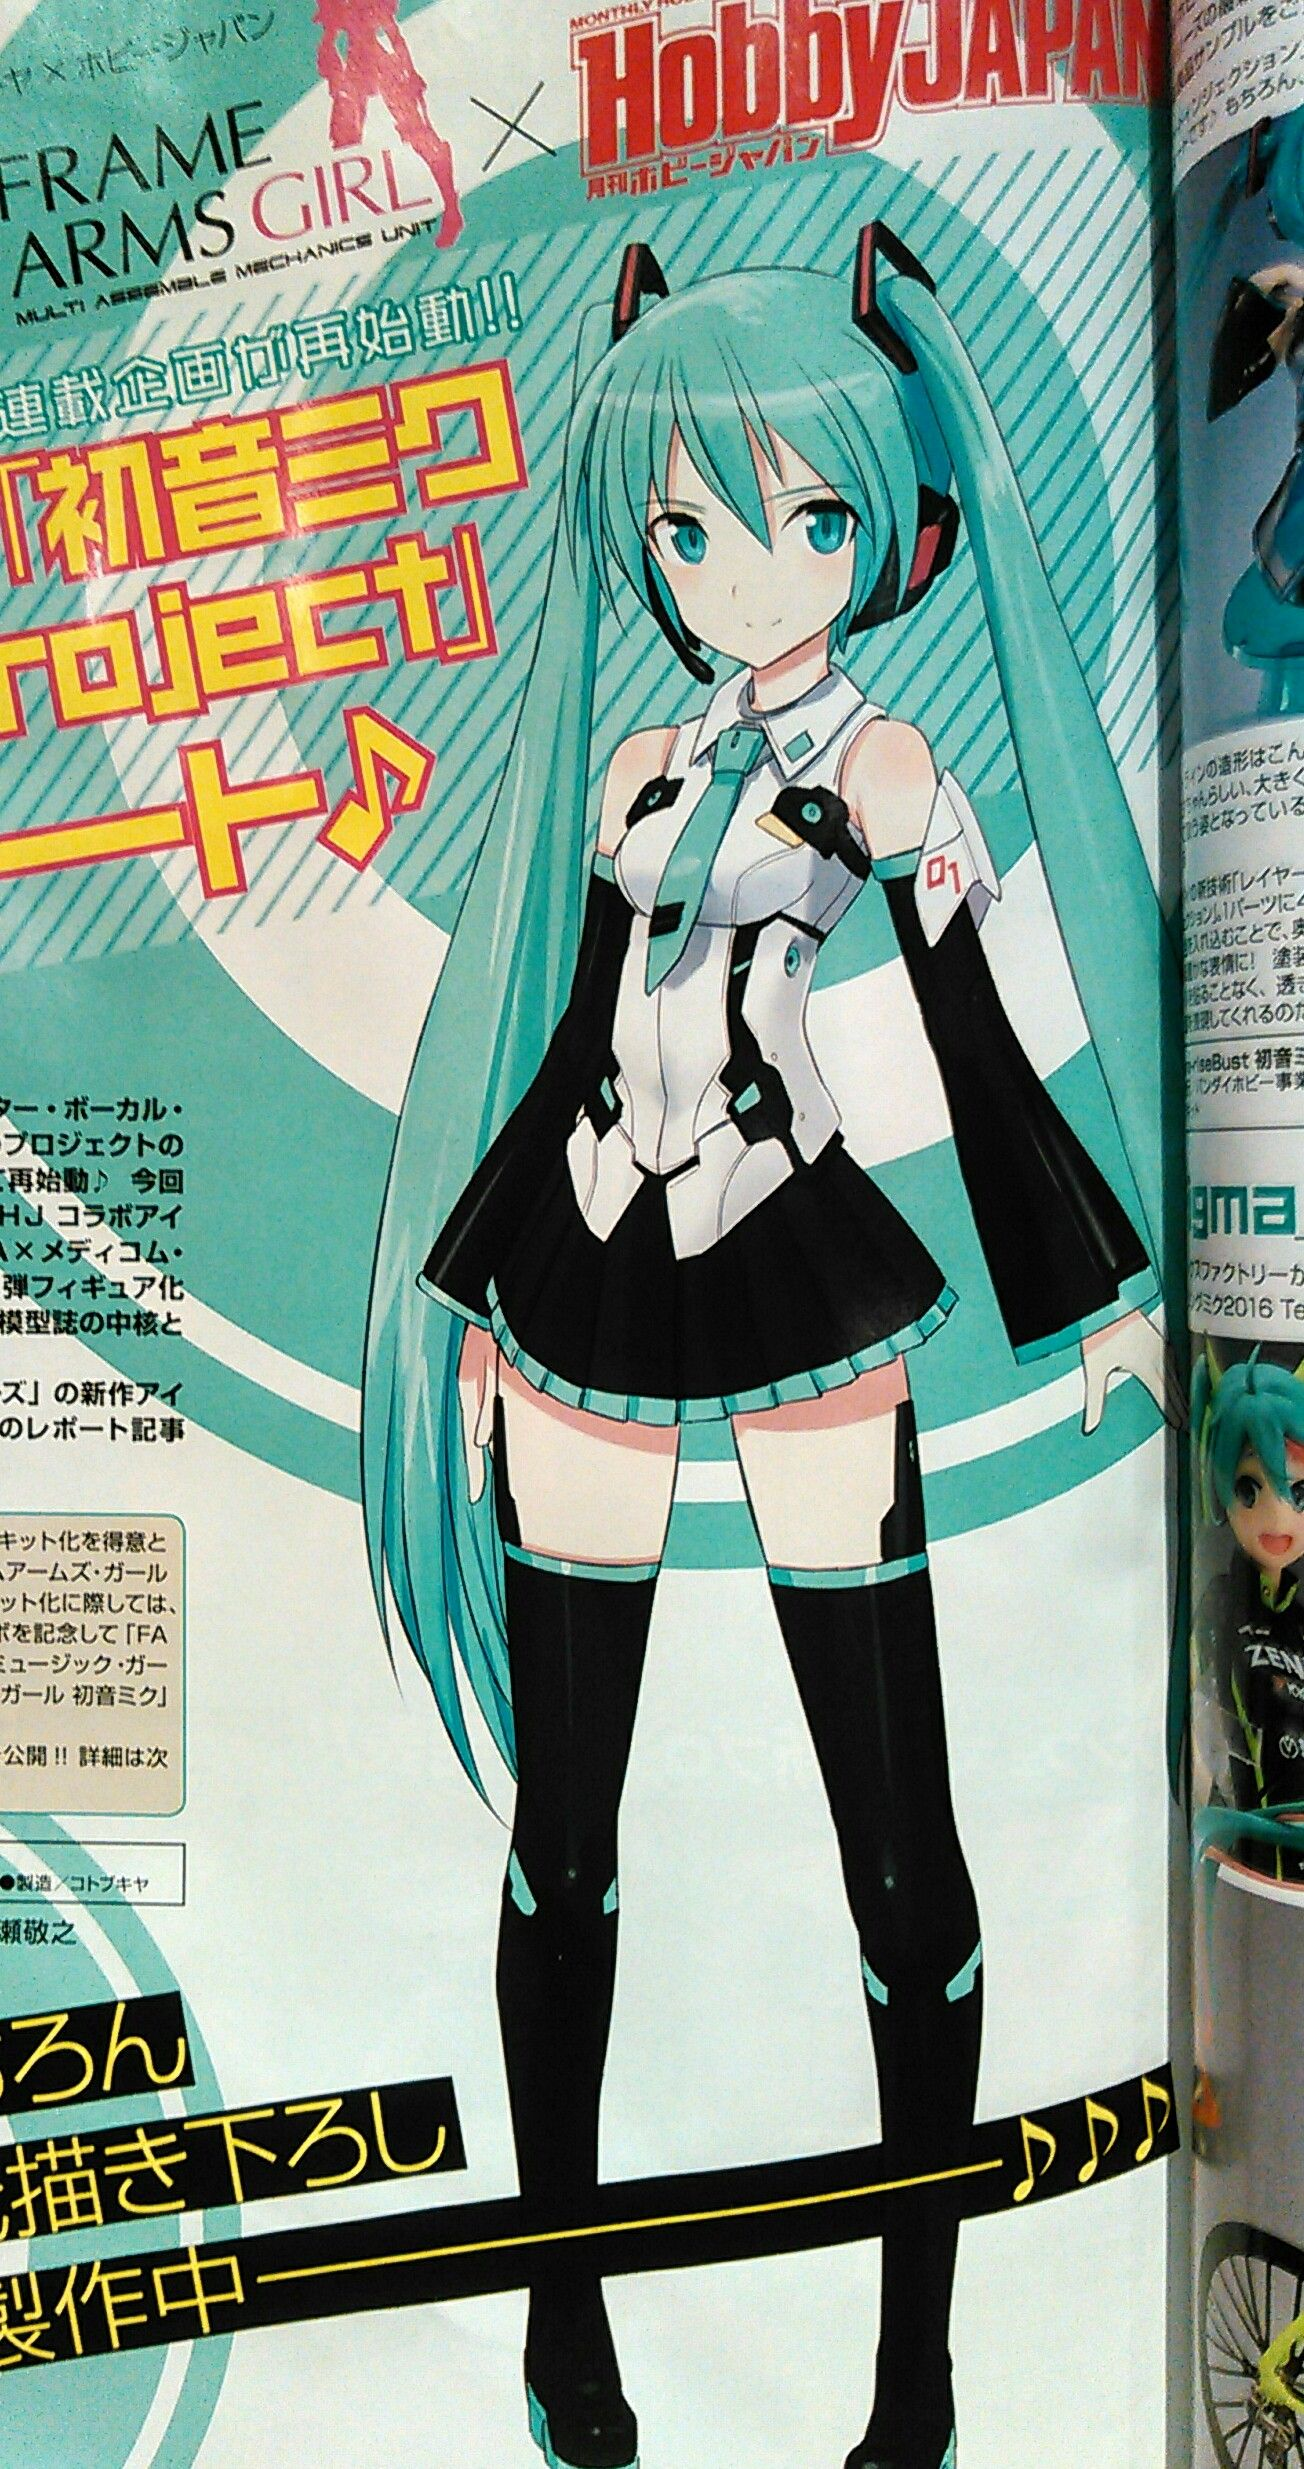 FAG+初音 (With images) Frame arms girl, Frame arms, Anime